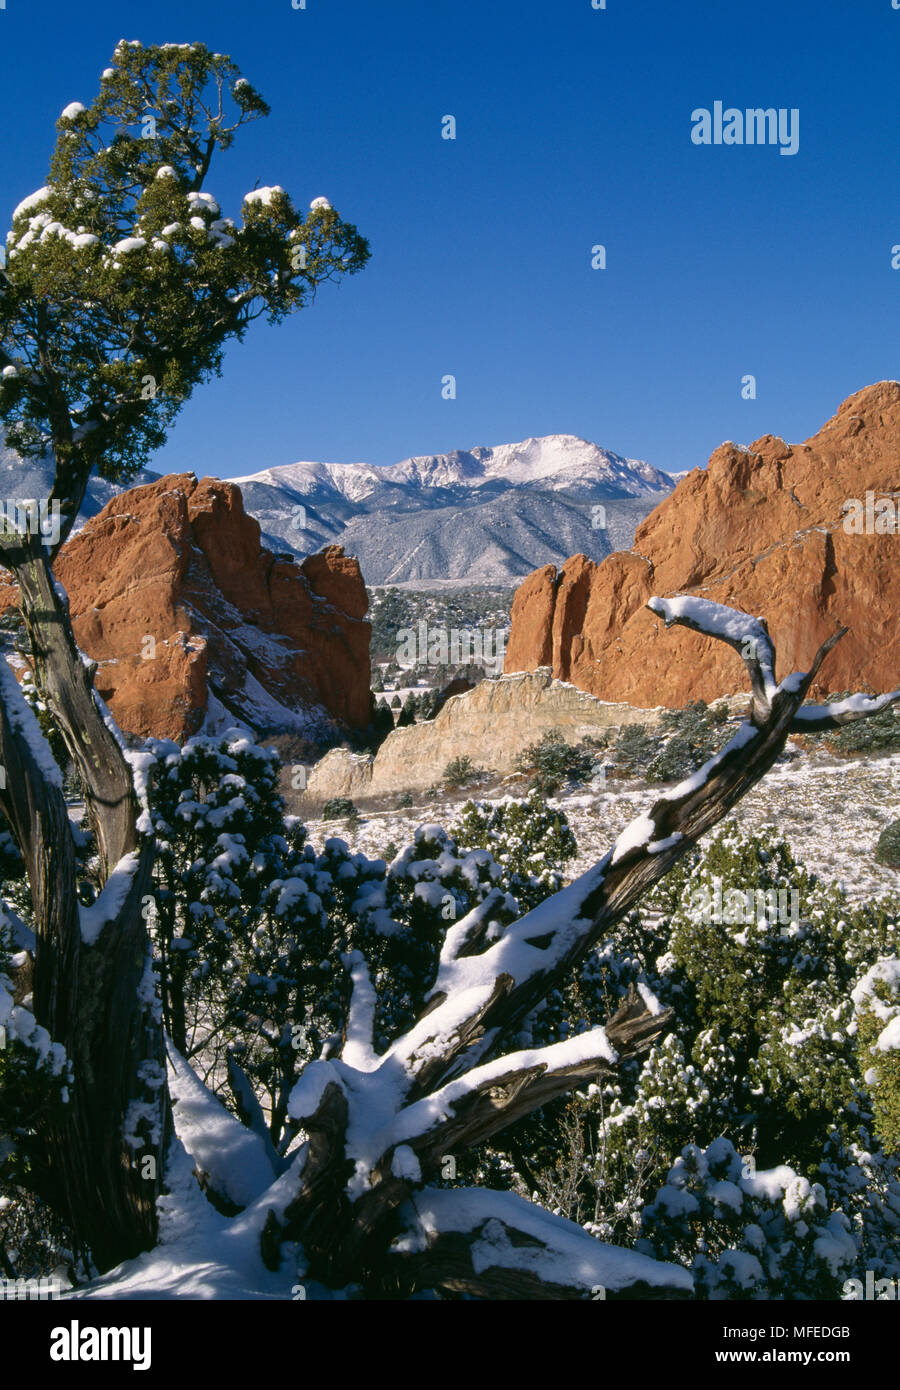 Garden Of The Gods Pikes Peak Rock Formation Early Winter